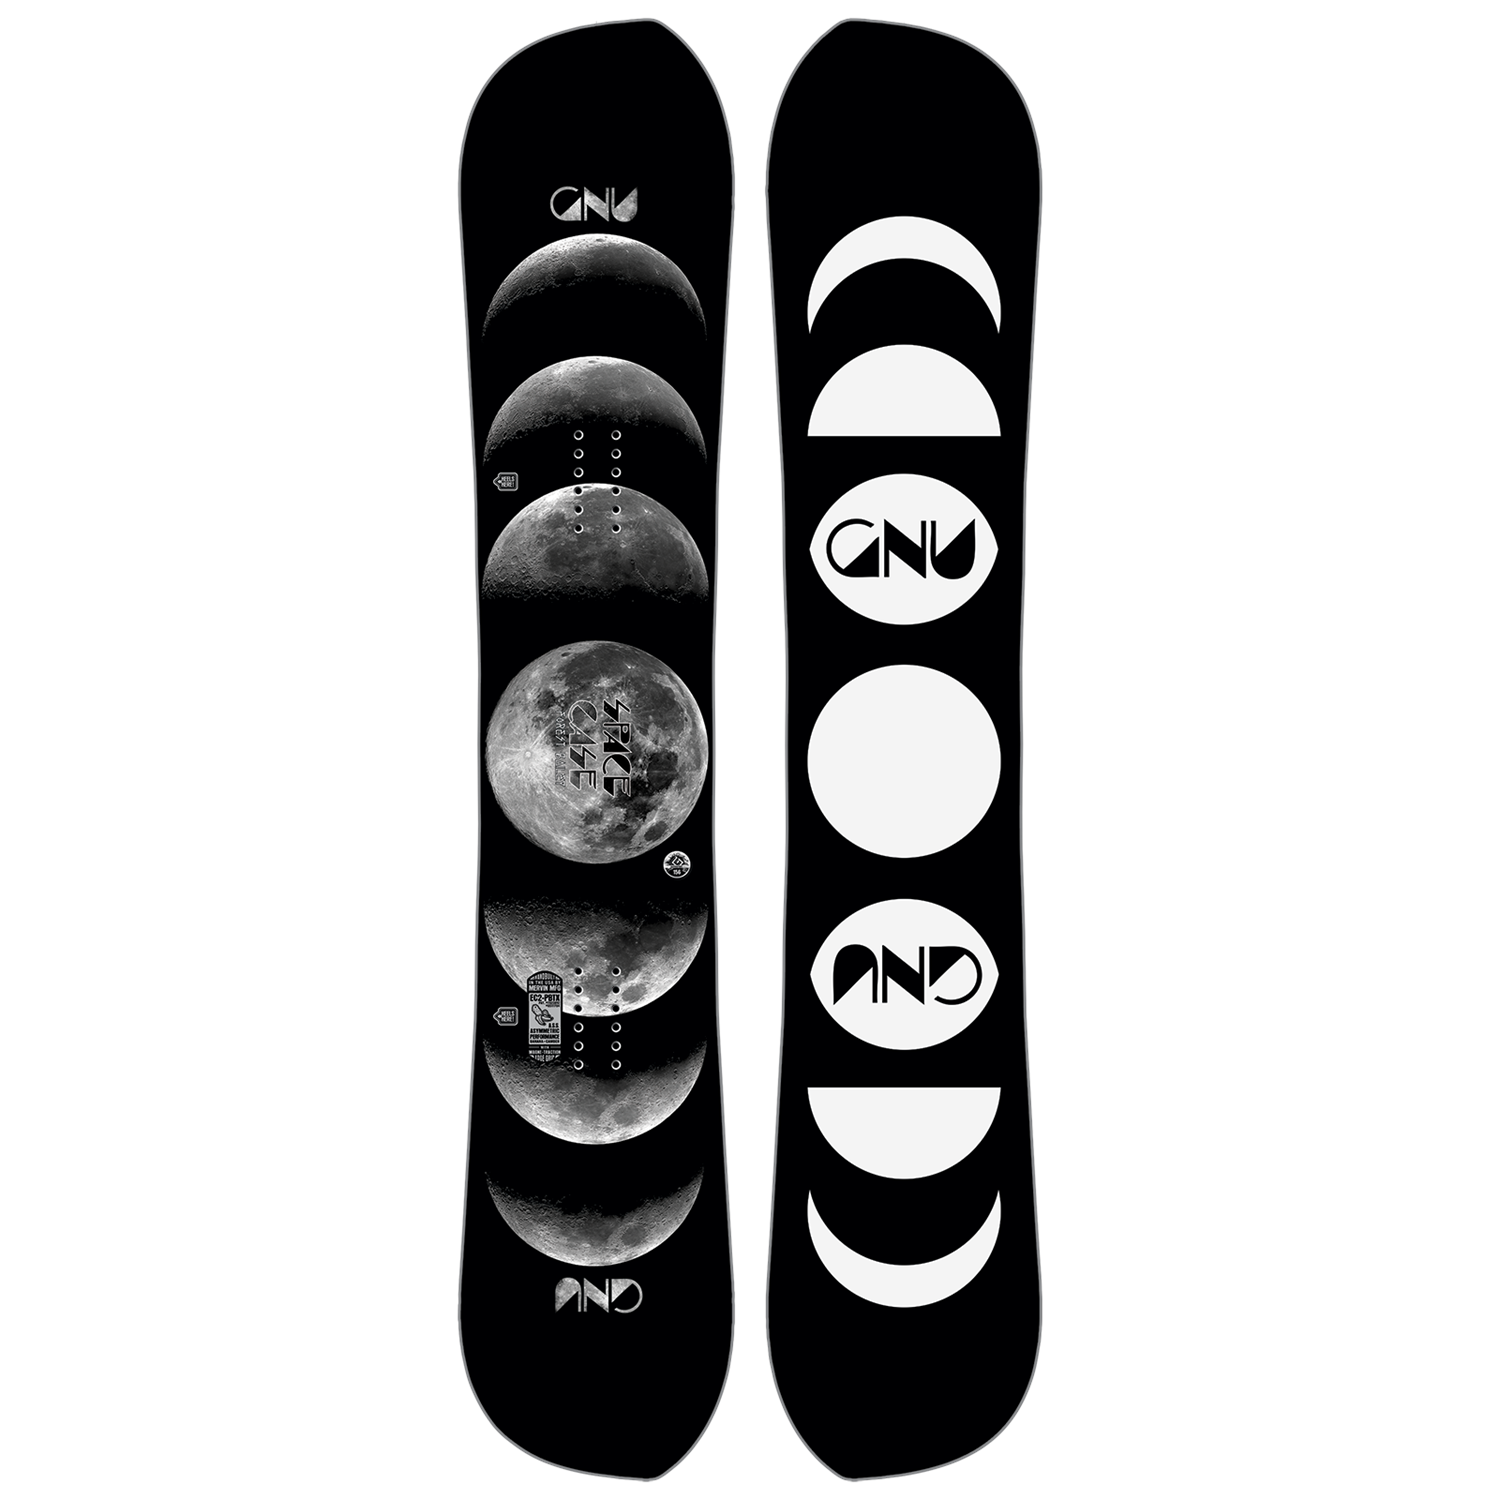 Lunar Moon Phases Snowboard Sticker All Weather 6 Vinyl Decal